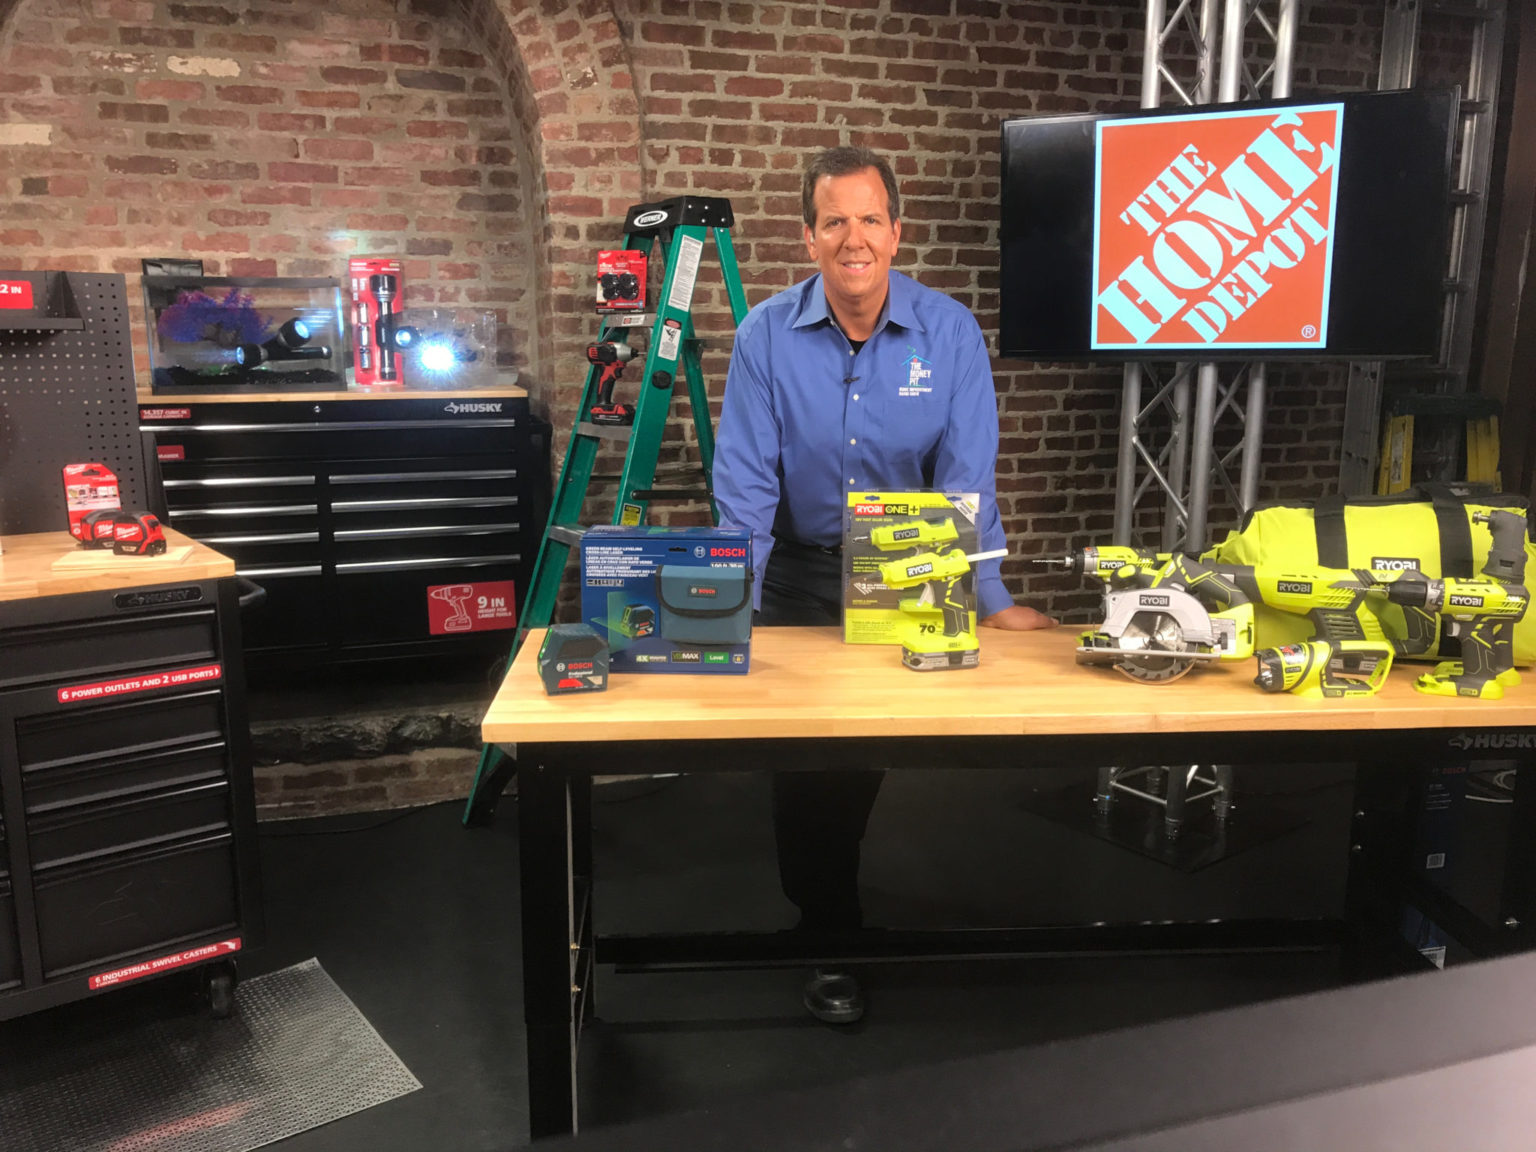 Host Tom Kraeutler on the set with new tools